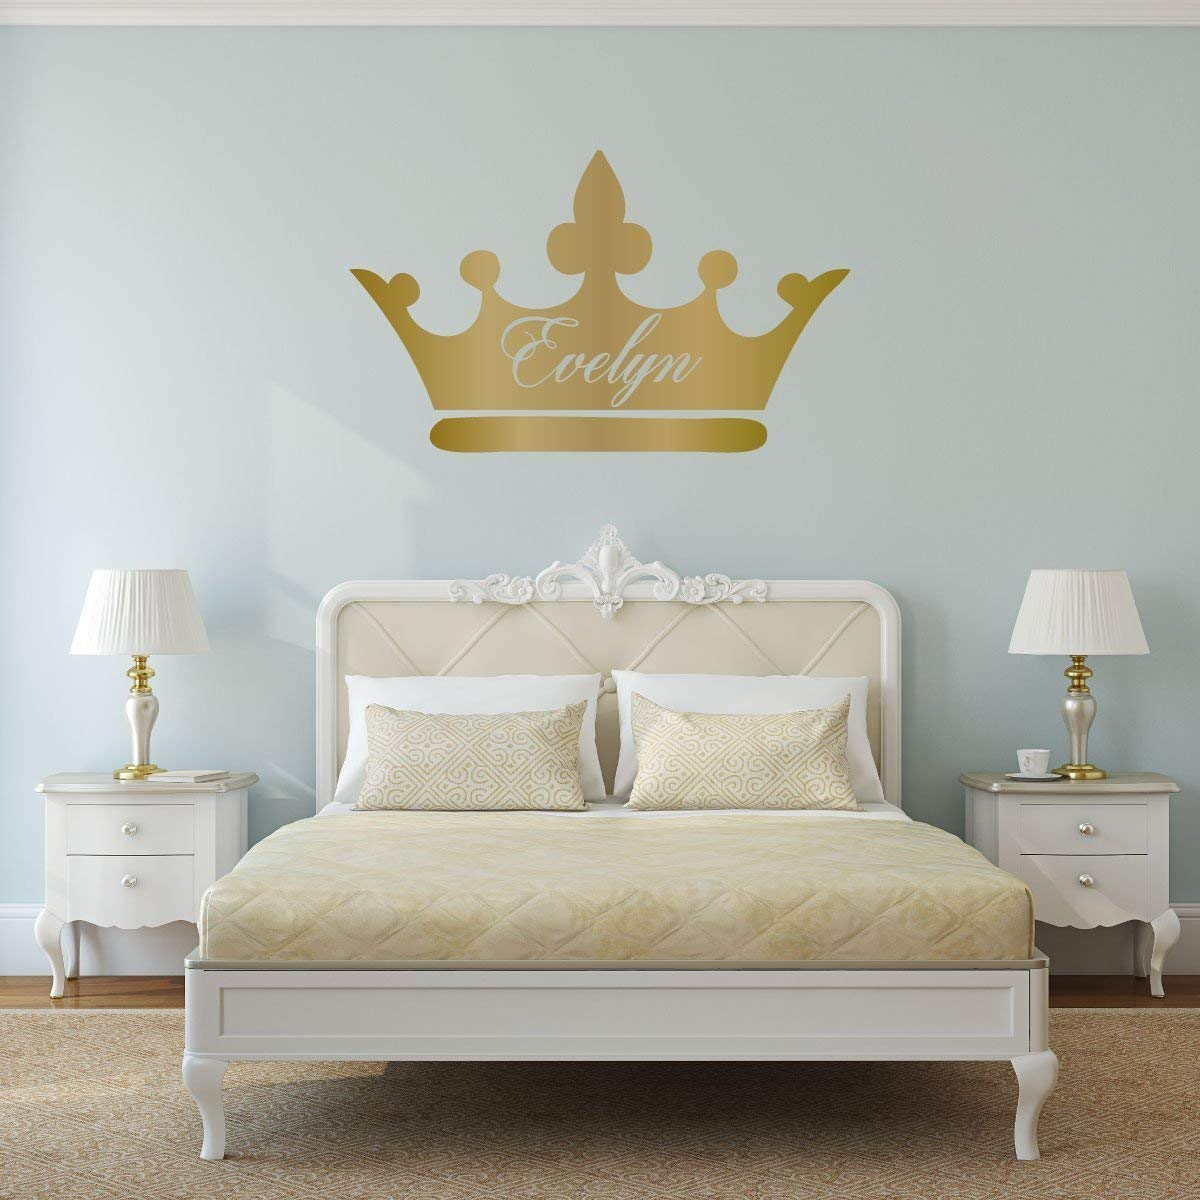 Personalized Princess Wall Art Decals Crown Silhouette | Custom Name and  Colors - Pink, Gray, Gold, Silver | Home Decor for Girls Room | Queen Tiara  ...